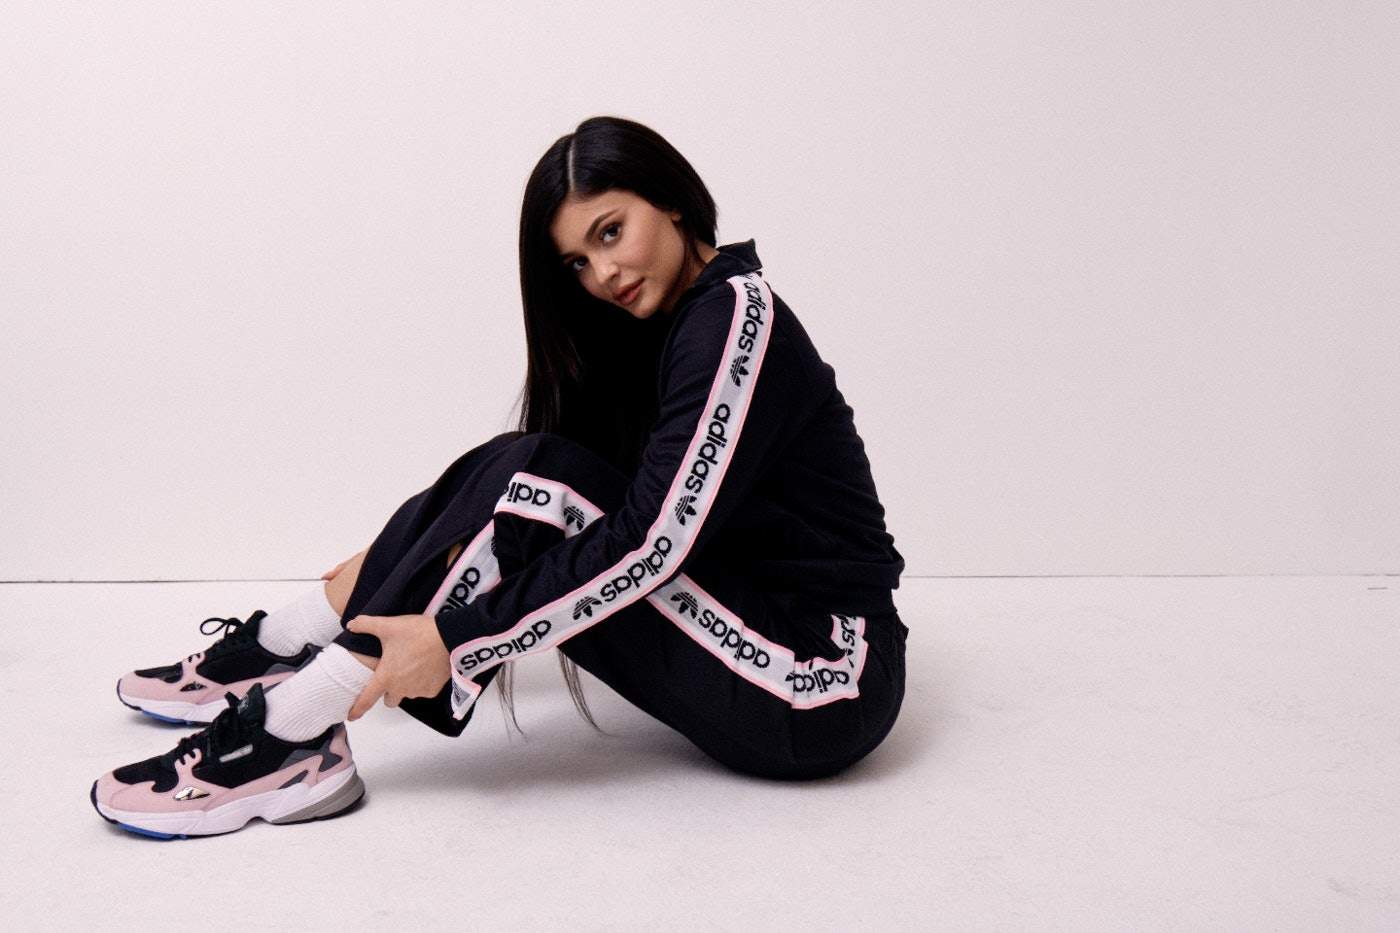 44641e449d68 The Kylie Jenner x Adidas Originals Campaign Is Here   It s All So  90s